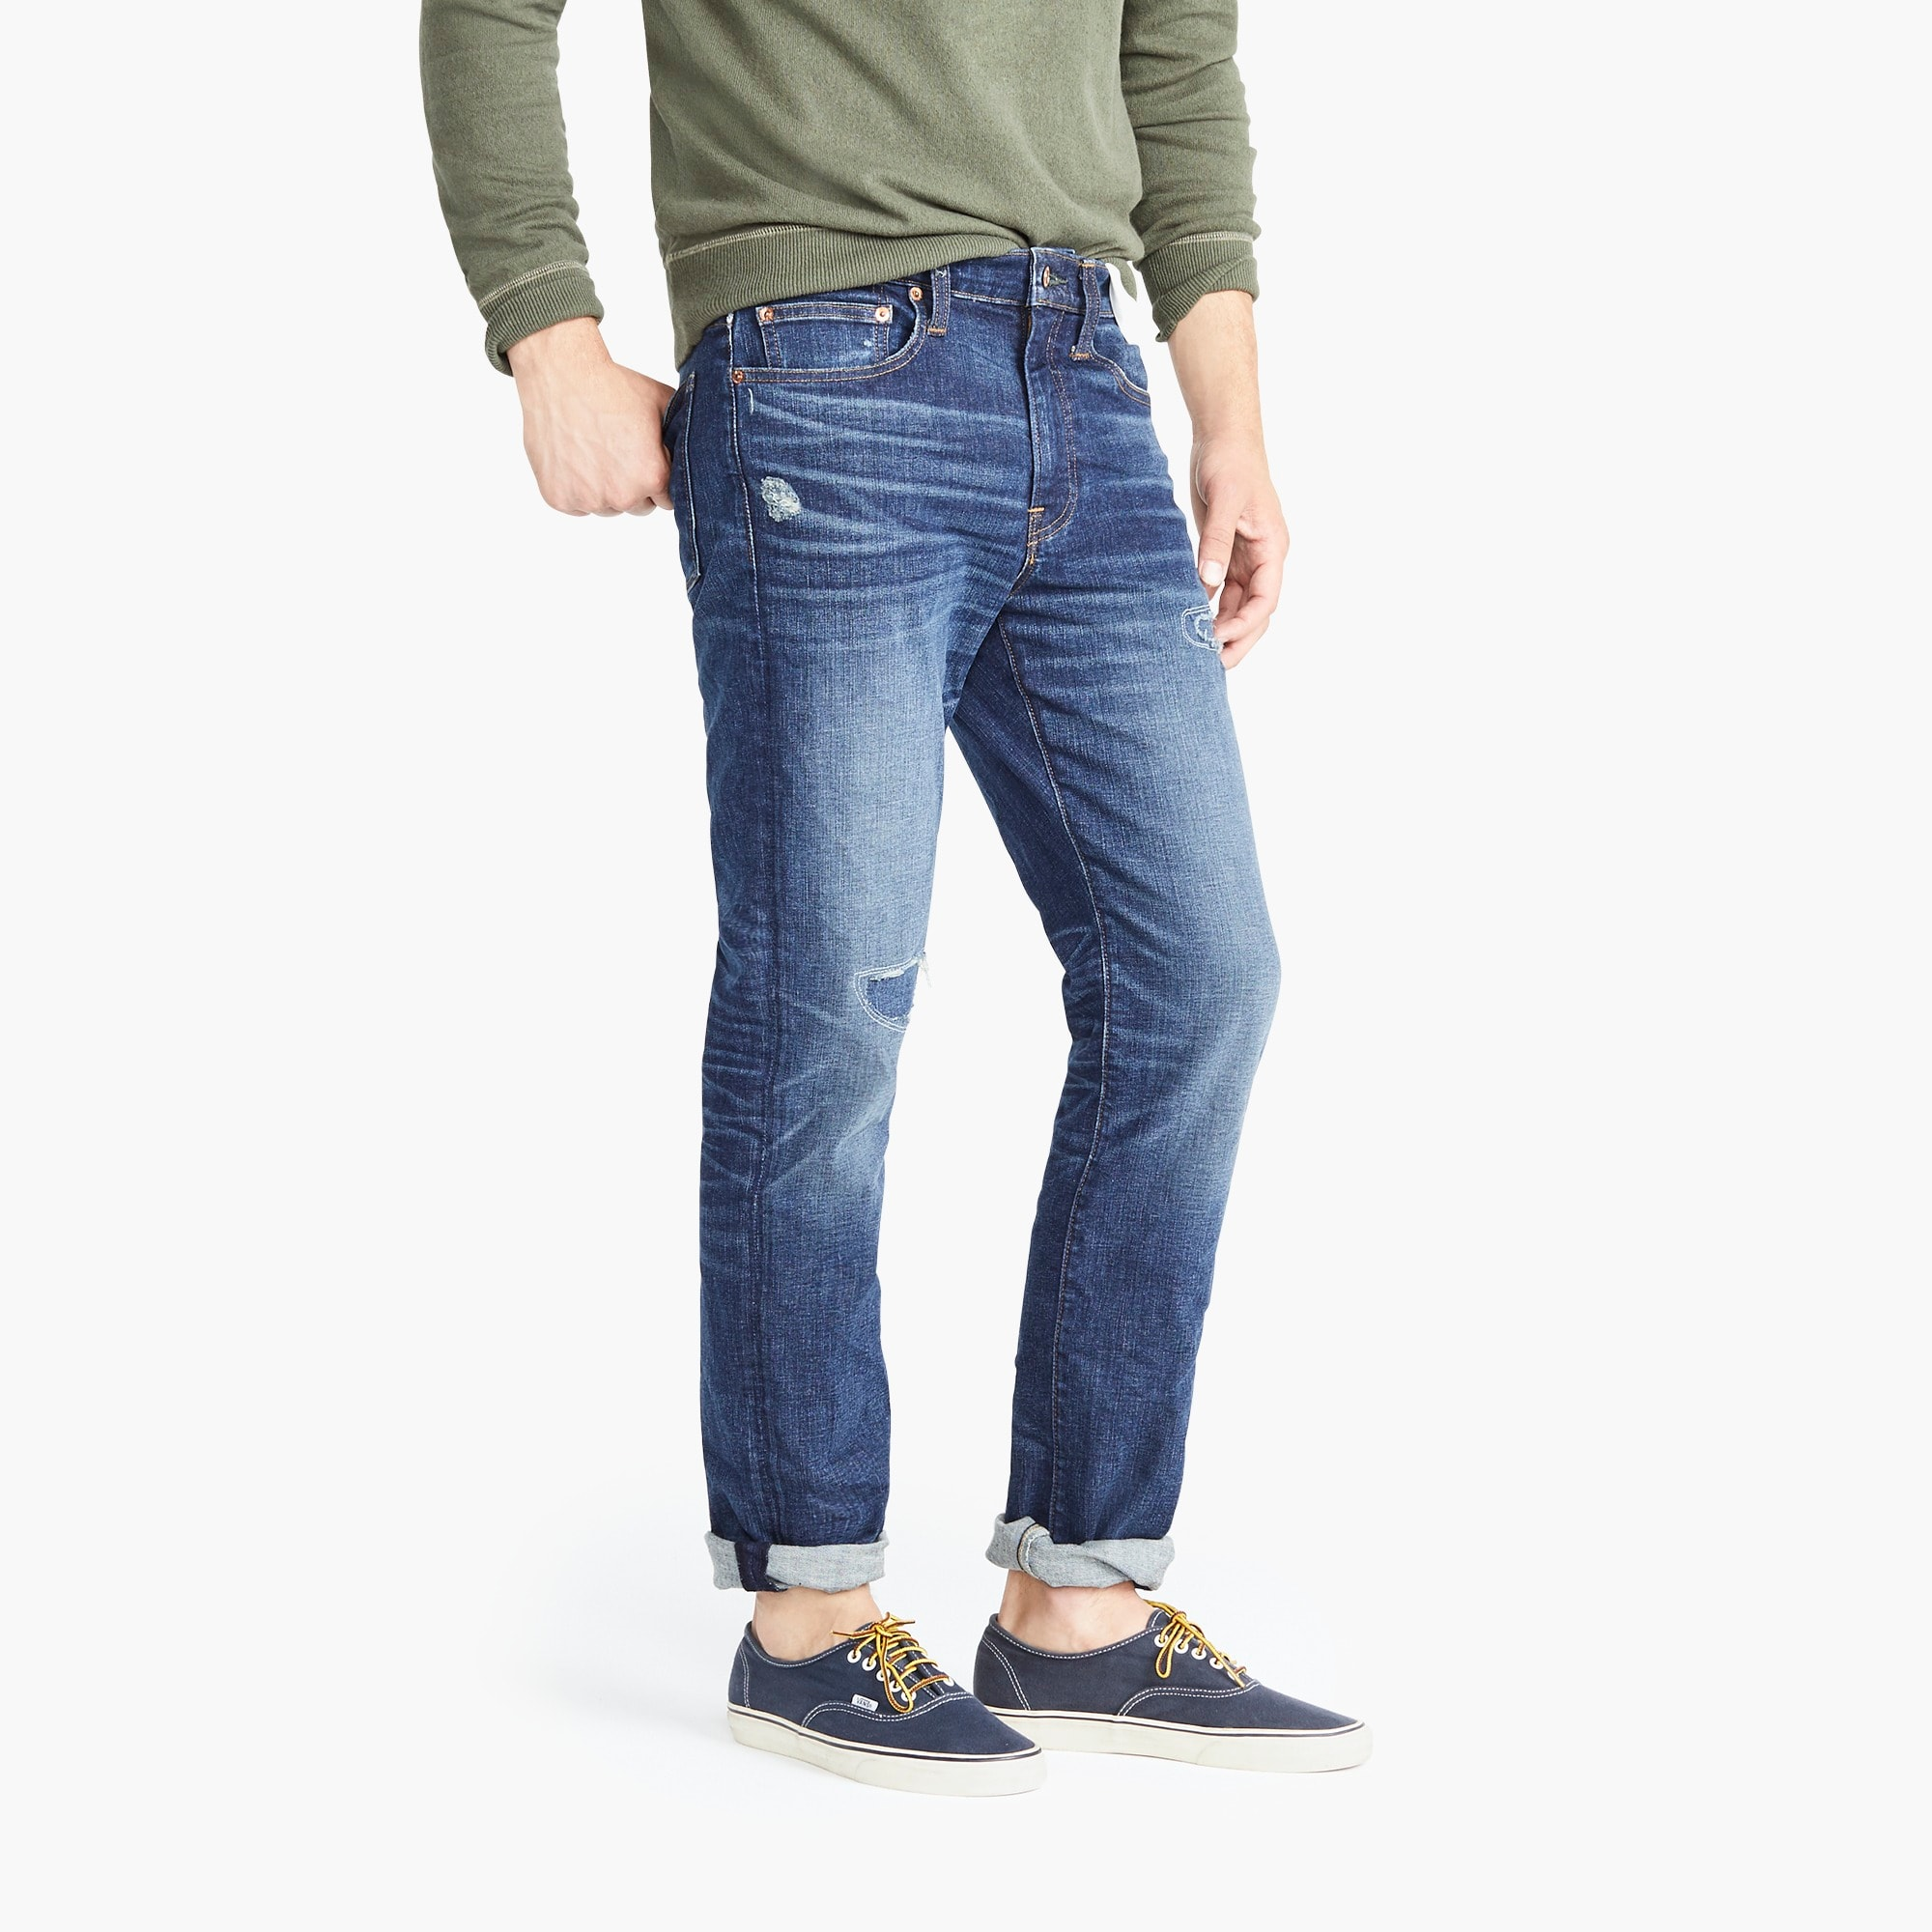 770 Straight-fit stretch rip and repair jean in Cone denim